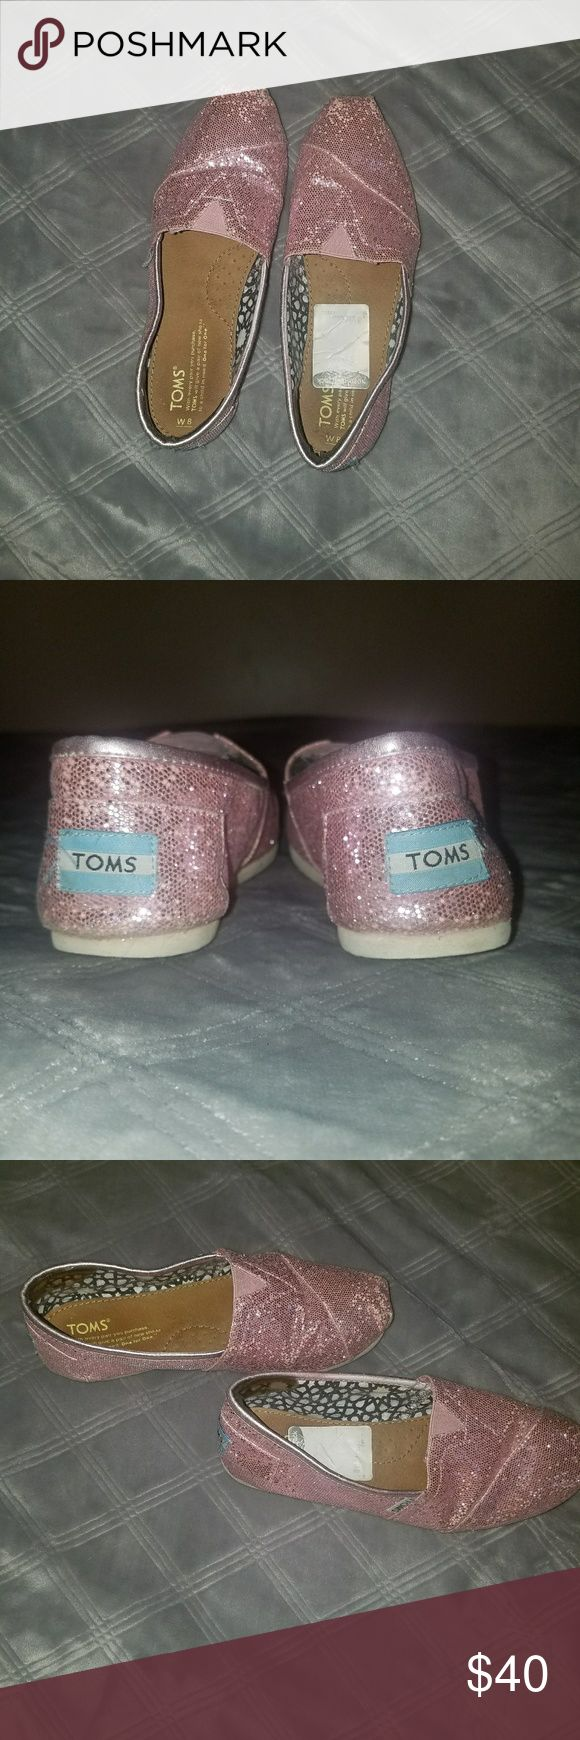 Sparkly Pink Toms Size 8 Good condition. Hardly worn. Selling because they're too big for me Toms Shoes Flats & Loafers